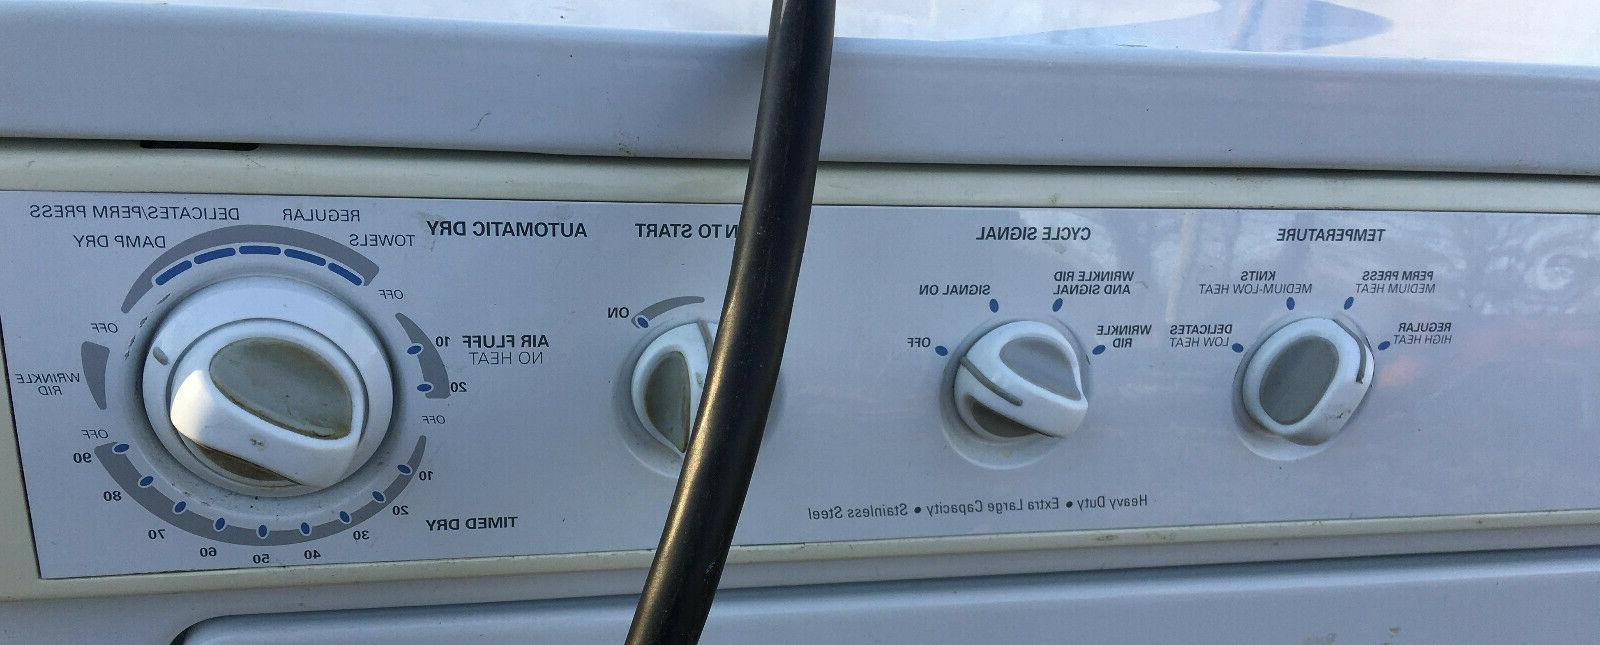 Kenmore Front Electric Dryer 417.83142300 LOCAL ONLY